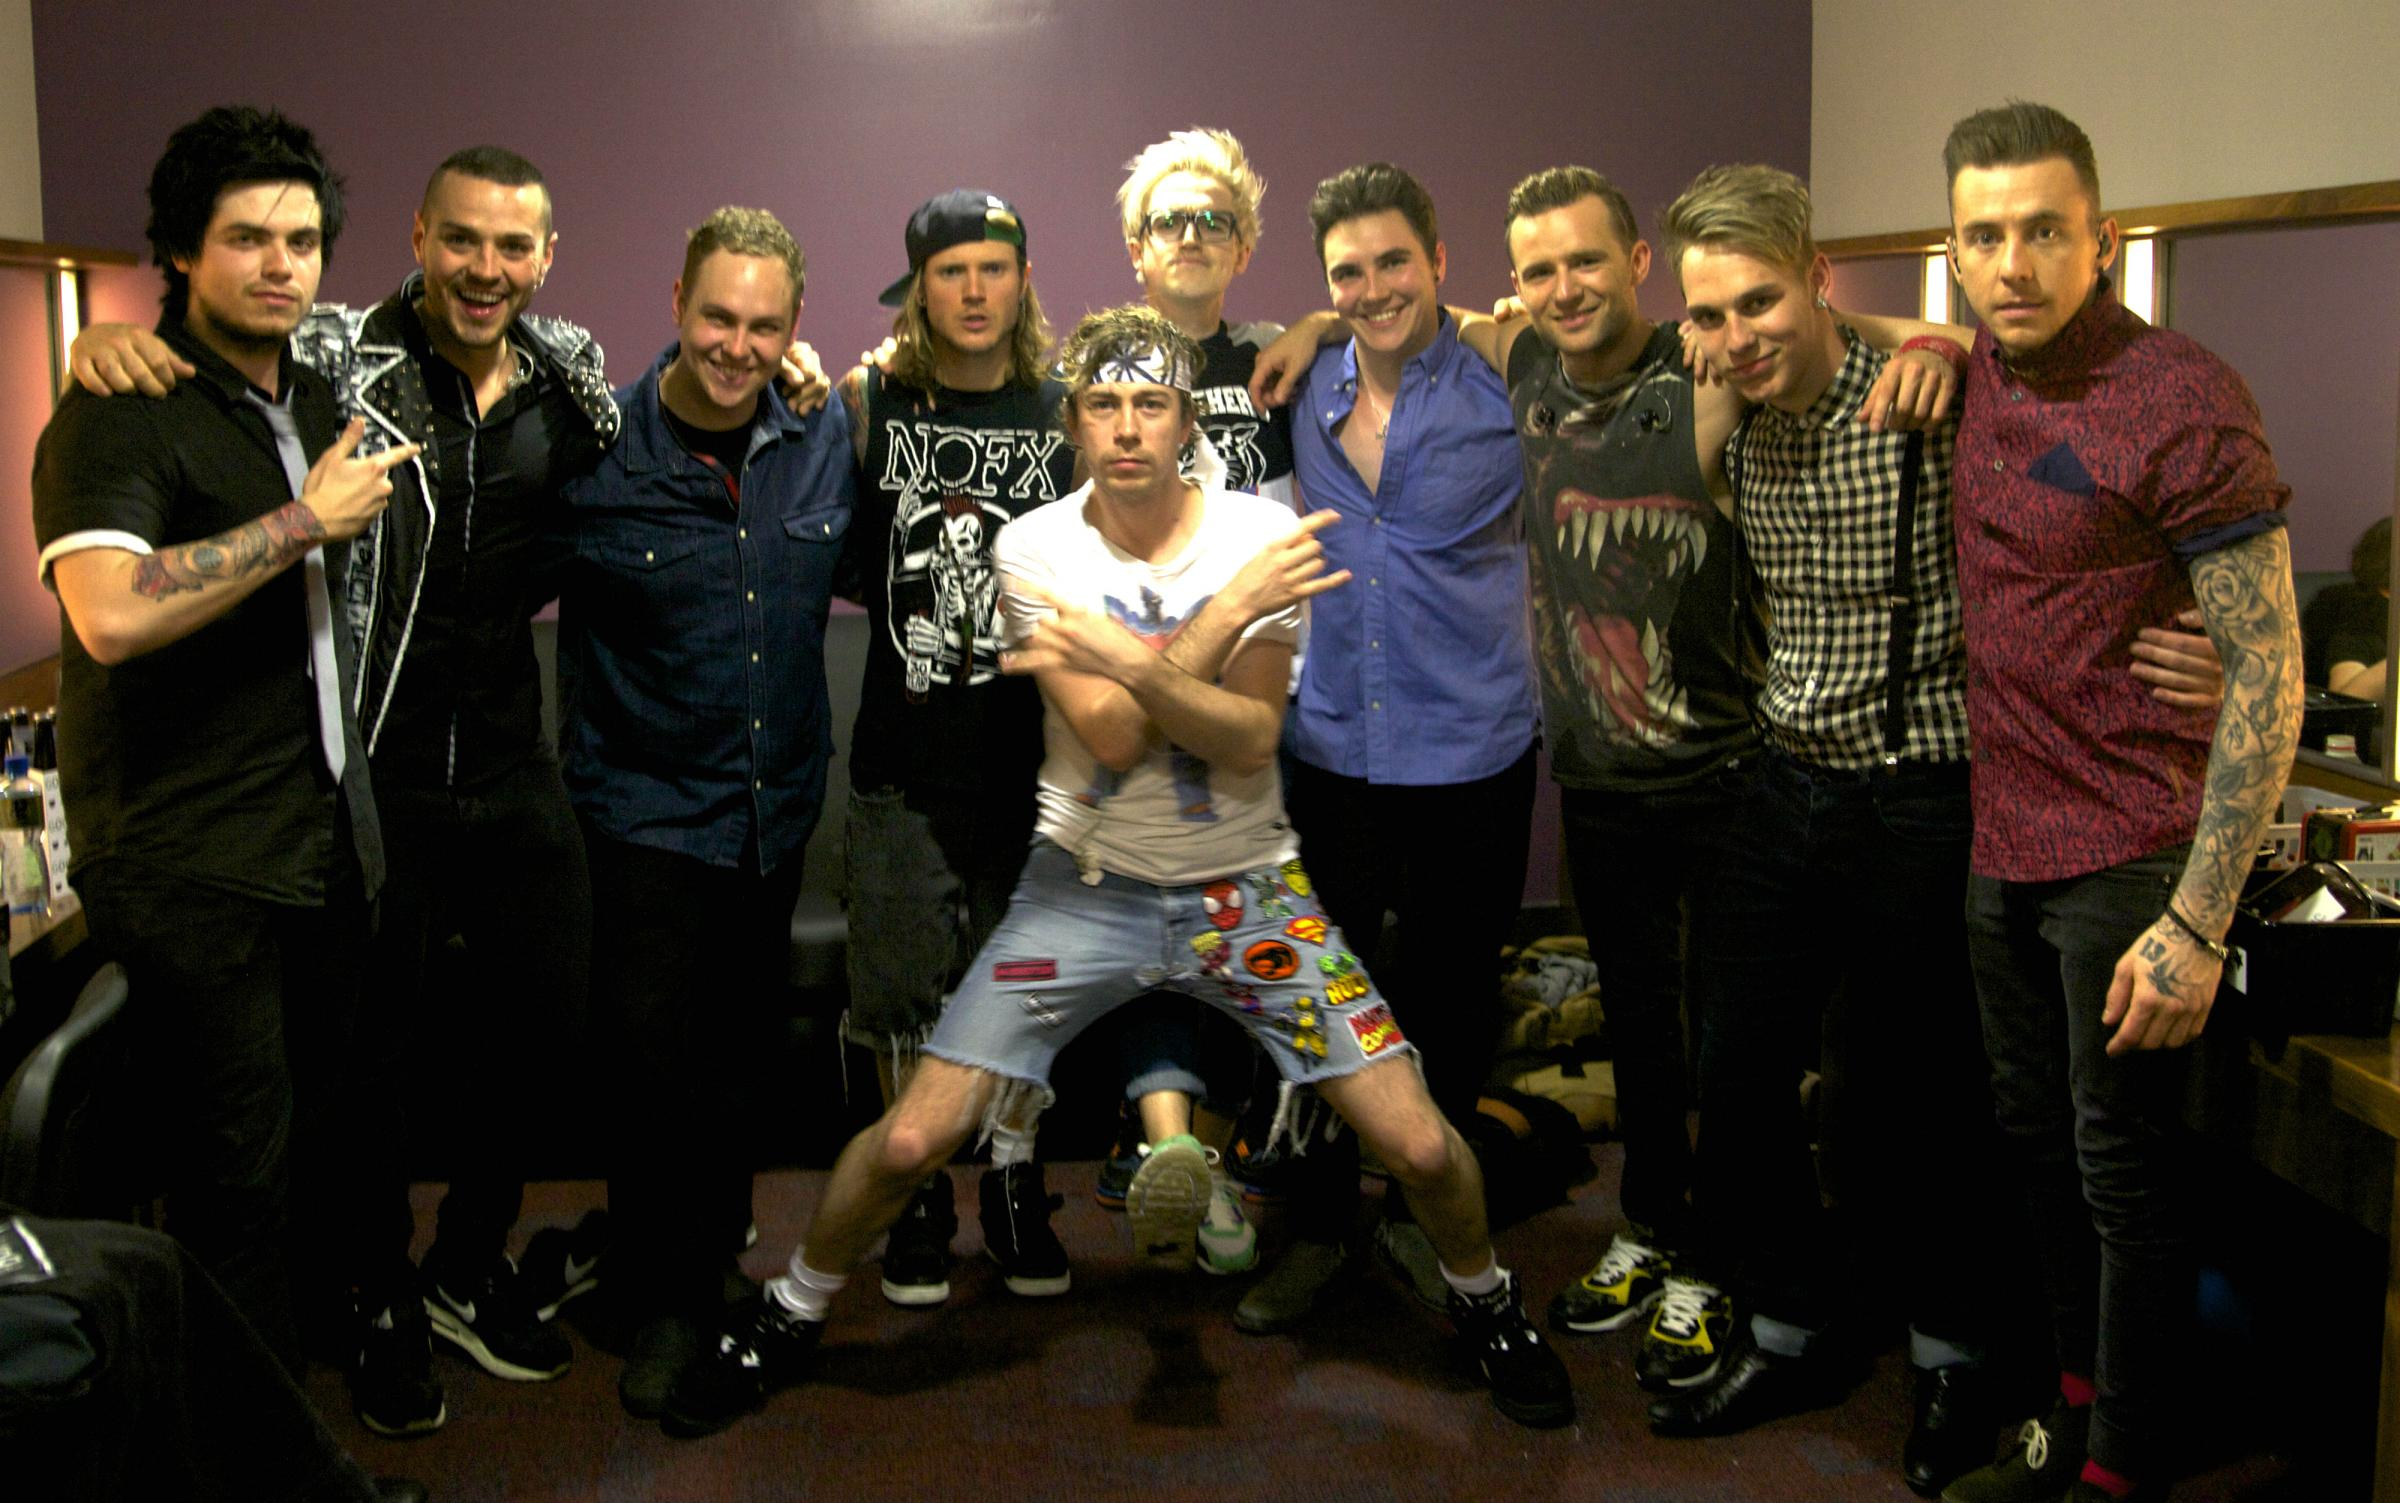 E of E with McBusted l-r Luke Bradley, Matt Willis, Nicky Waters, Dougie Poynter, James Bourne, Tom Fletcher, Harry Judd, Dan Bremner, Tom Harris and Danny Jones.